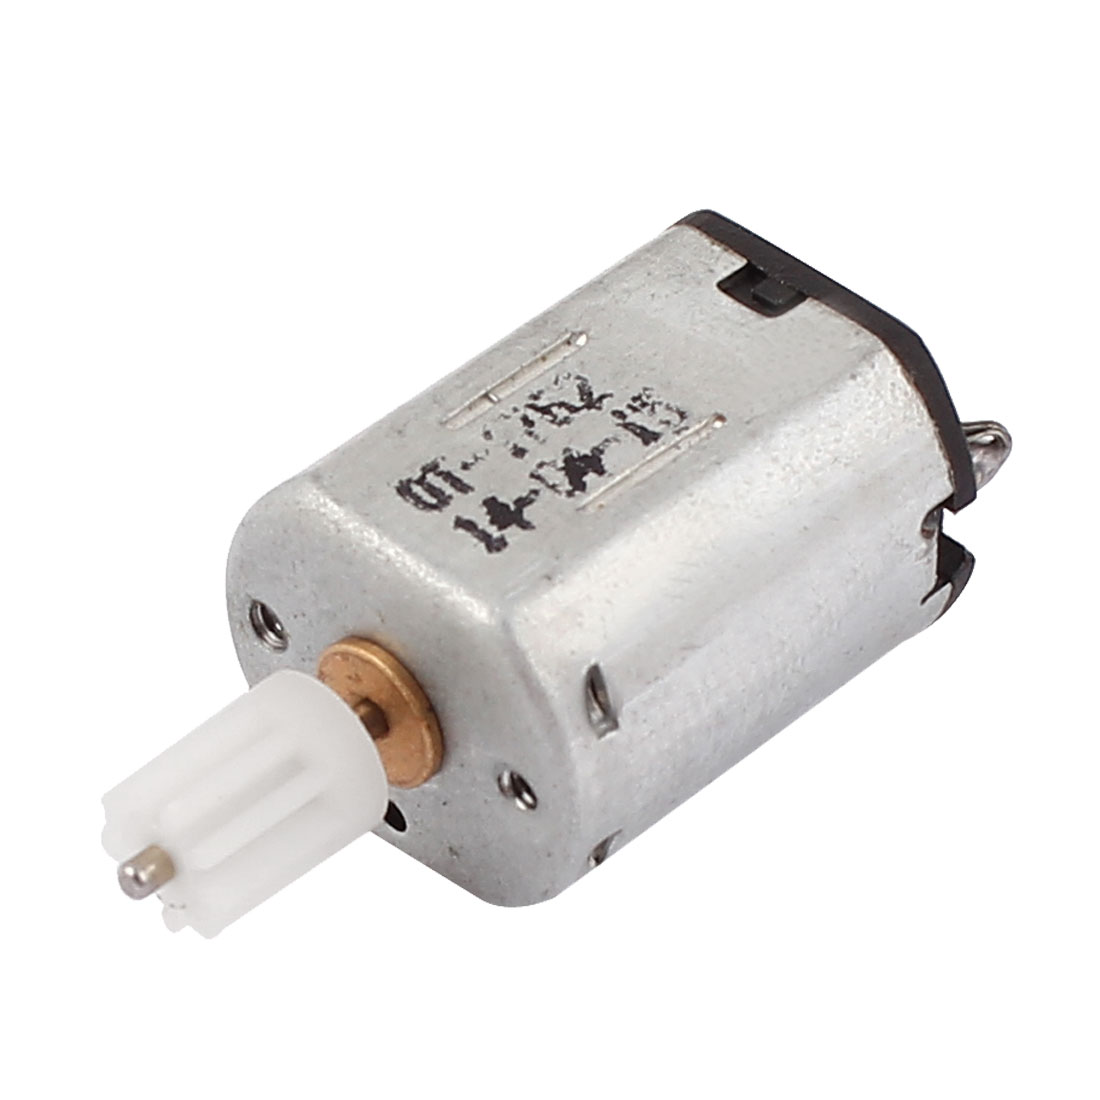 DC 1.5-6V 21500RPM 1mm Shaft Dia Micro Motor for DIY Electric Toy Car Ship